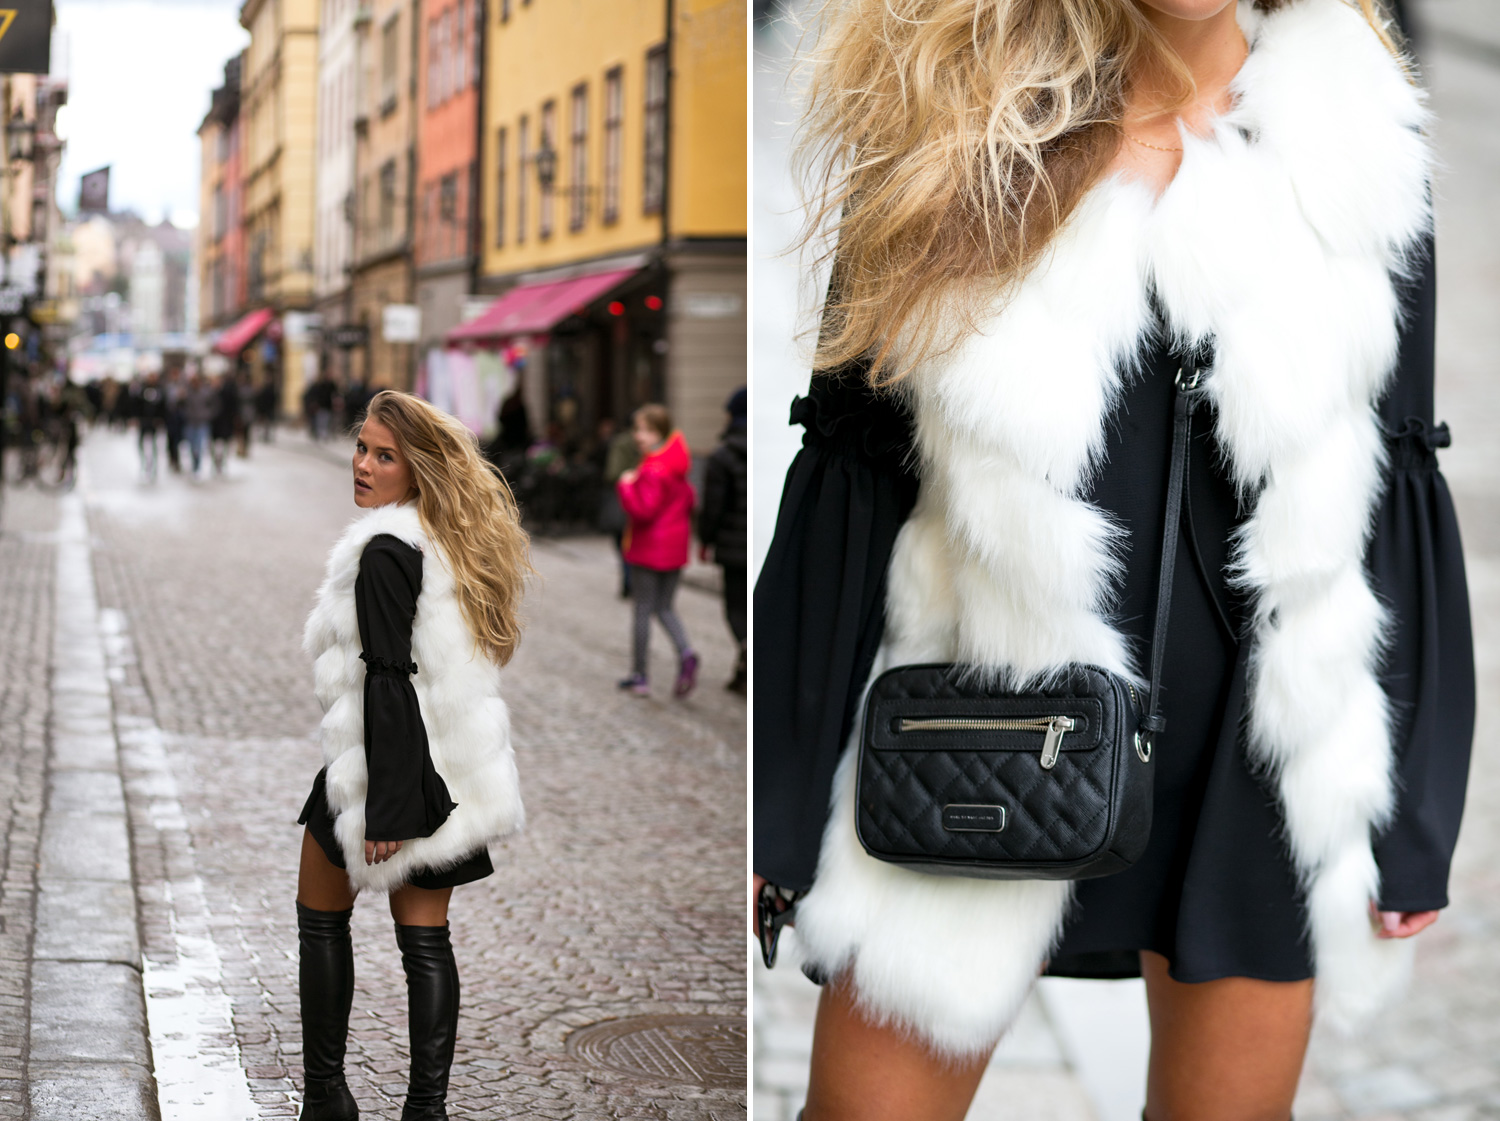 005-stockholm-blogger-fashion.jpg